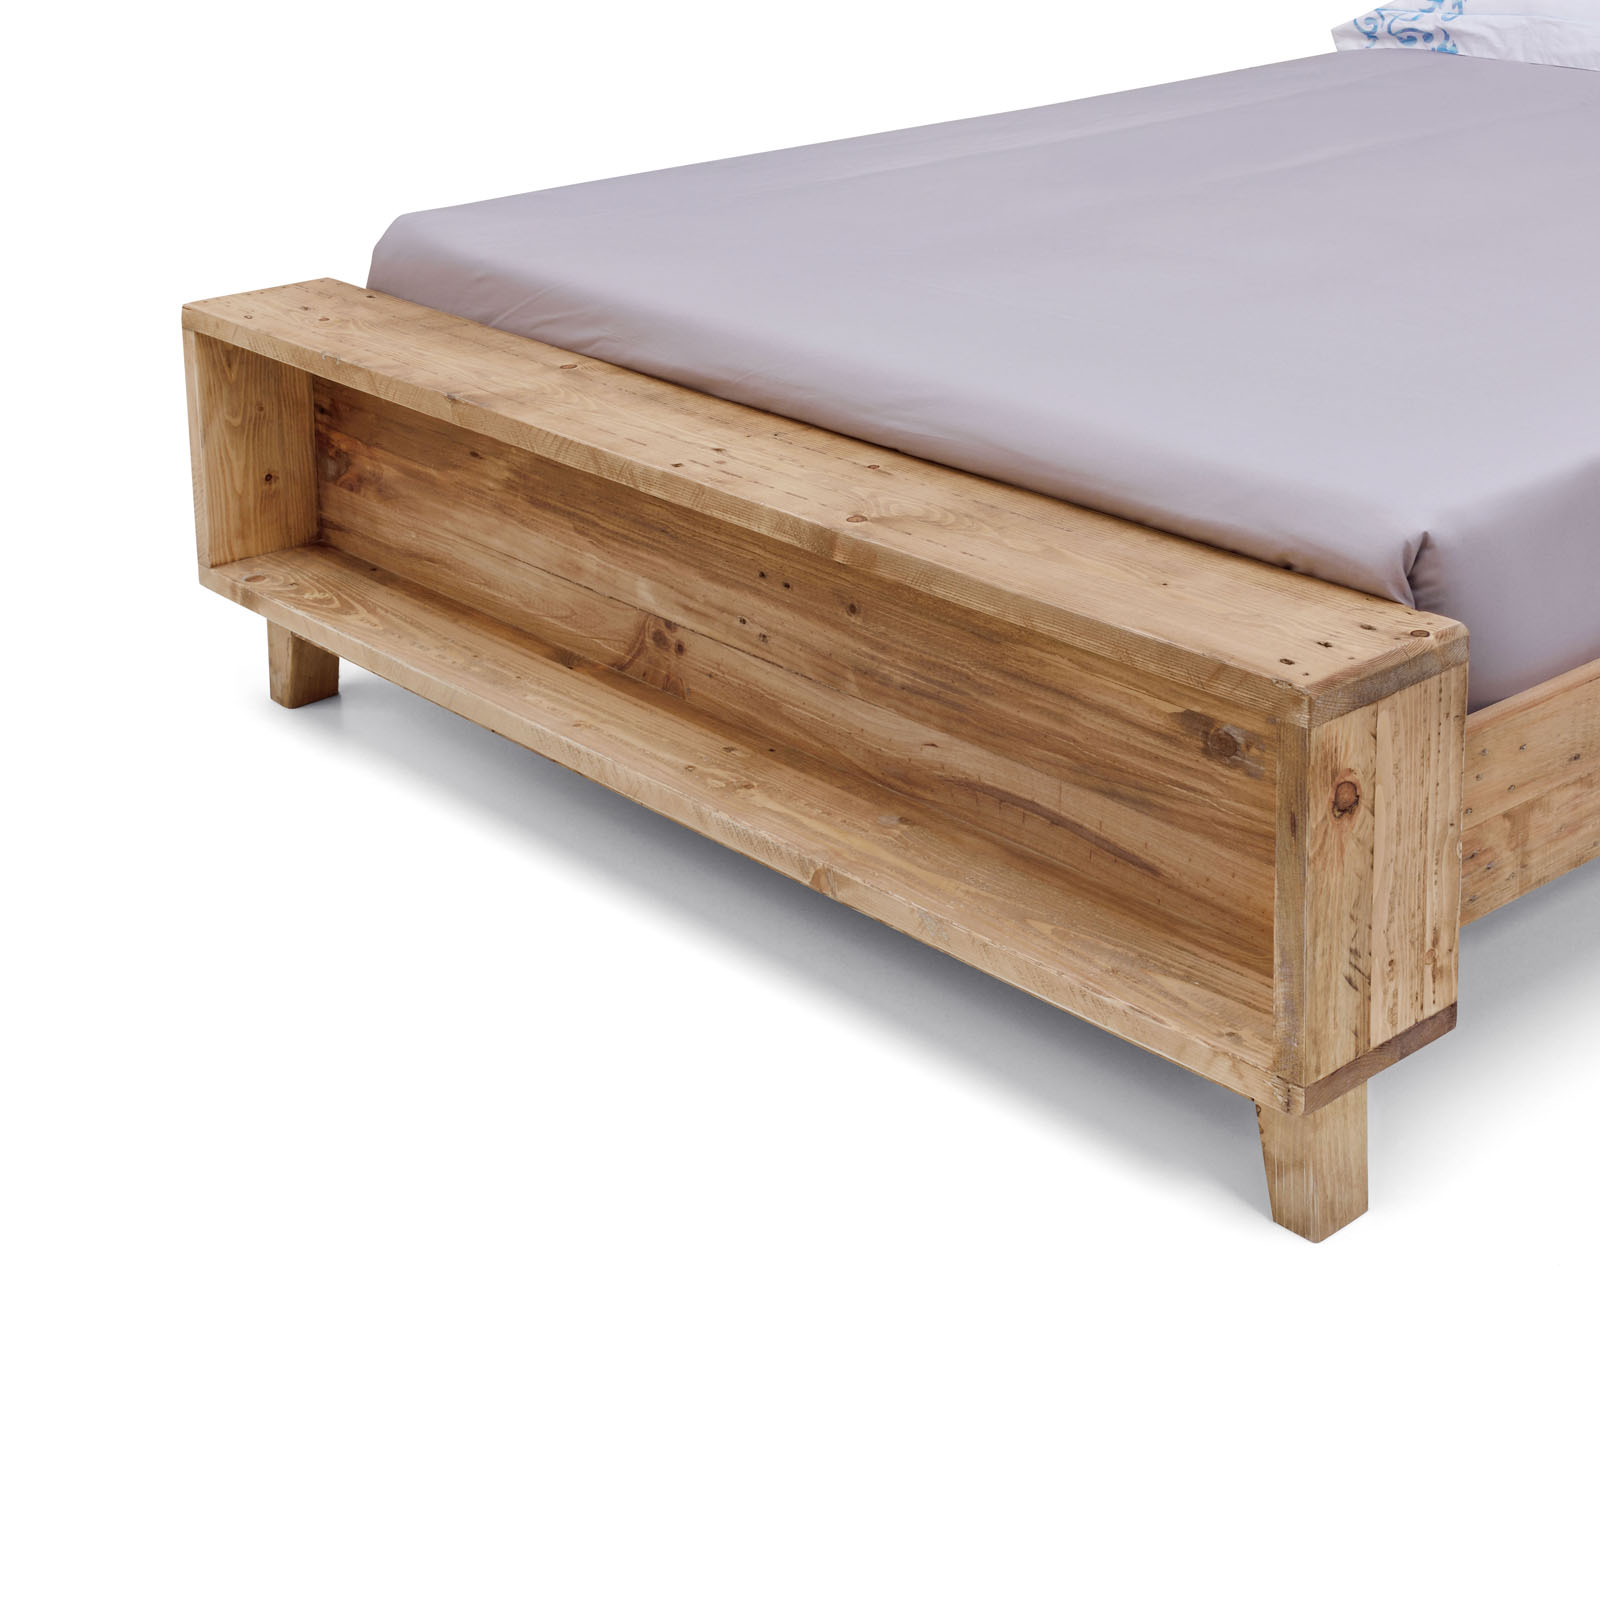 Portland Recycled Solid Pine Rustic Timber King Queen